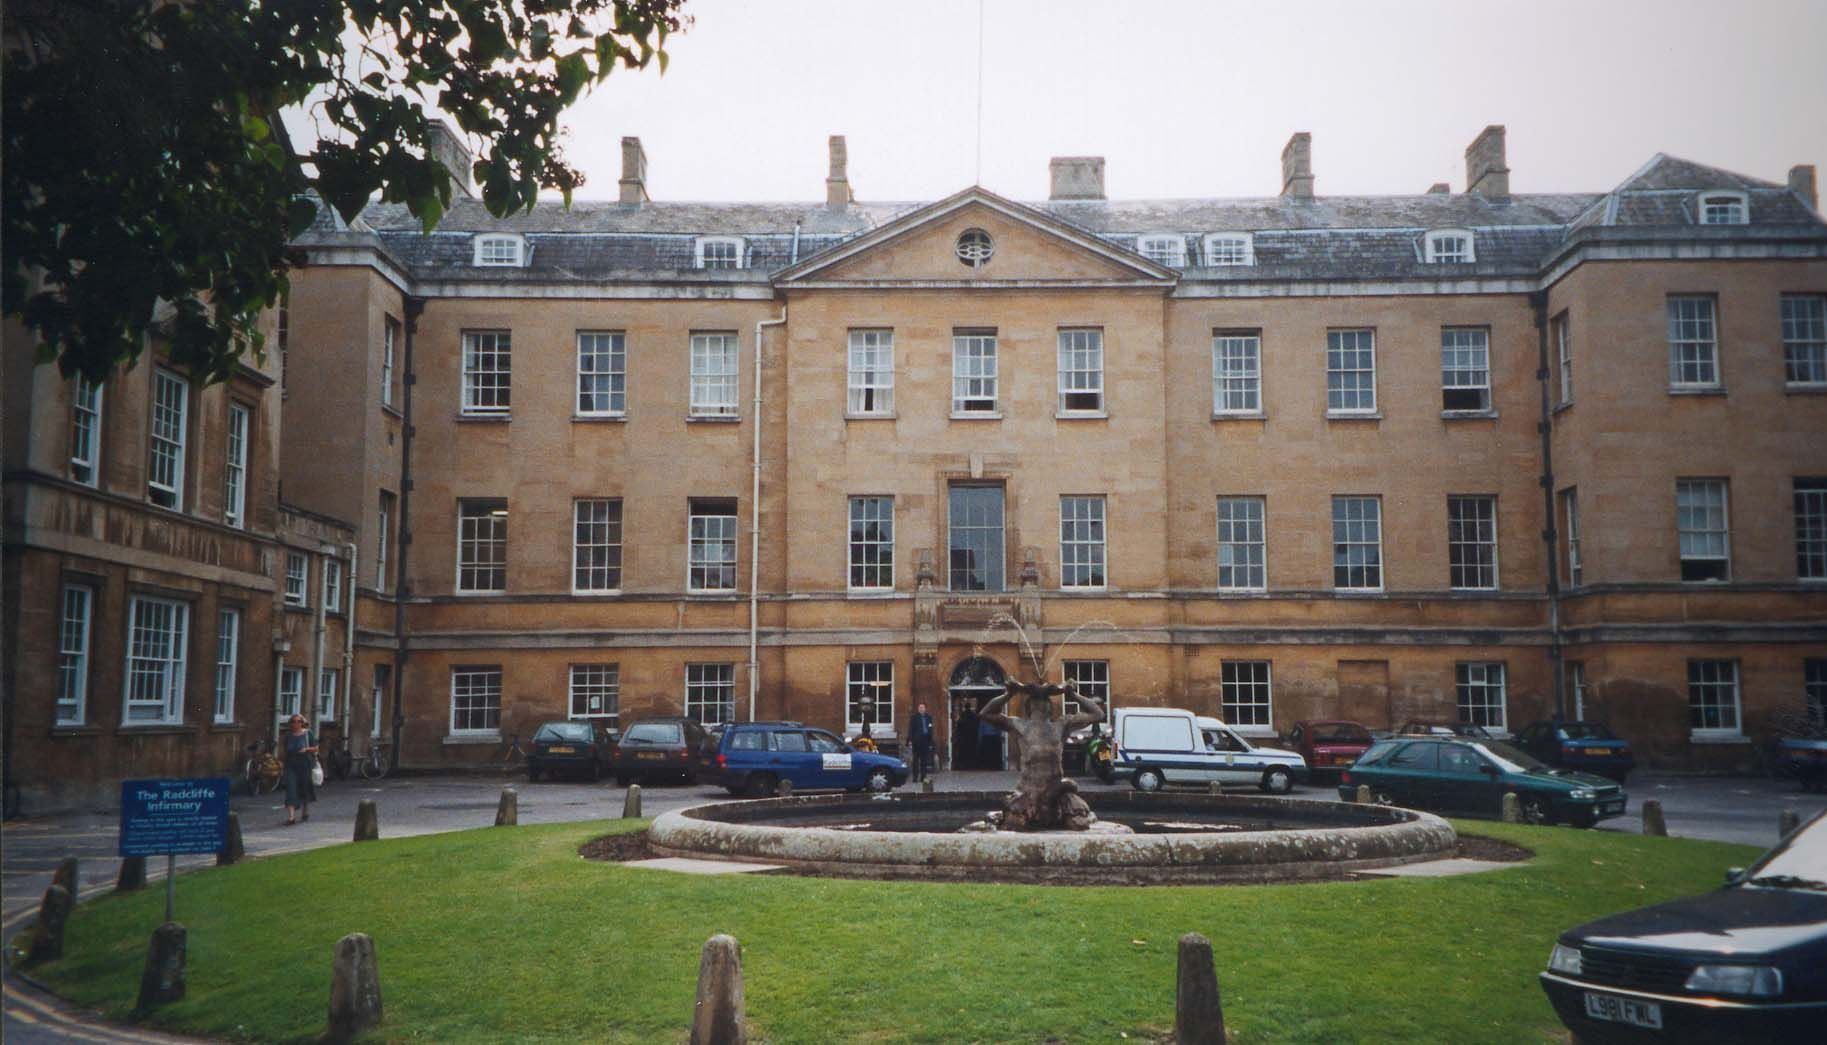 Radcliffe Infirmary. Oxford, England. With Guillermo Martínez in The Oxford Murders.